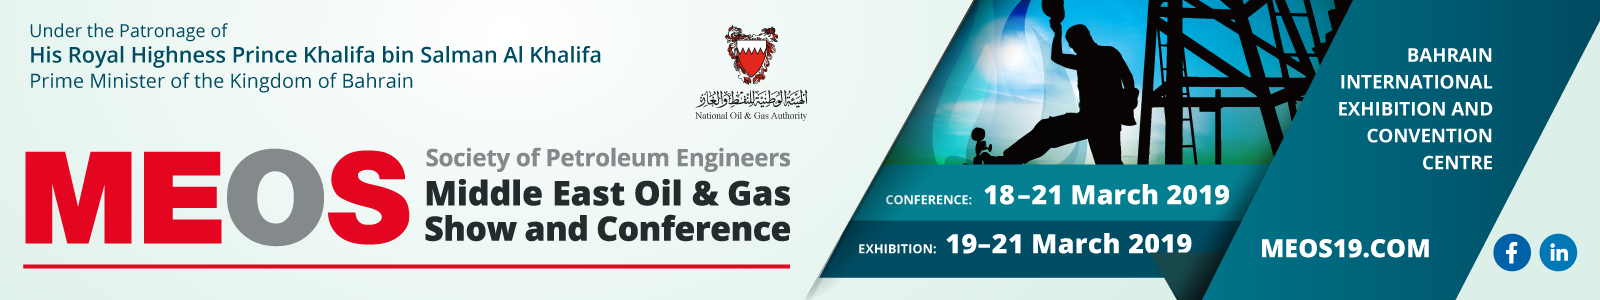 MEOS 2019 - Middle East Oil & Gas Show and Conference